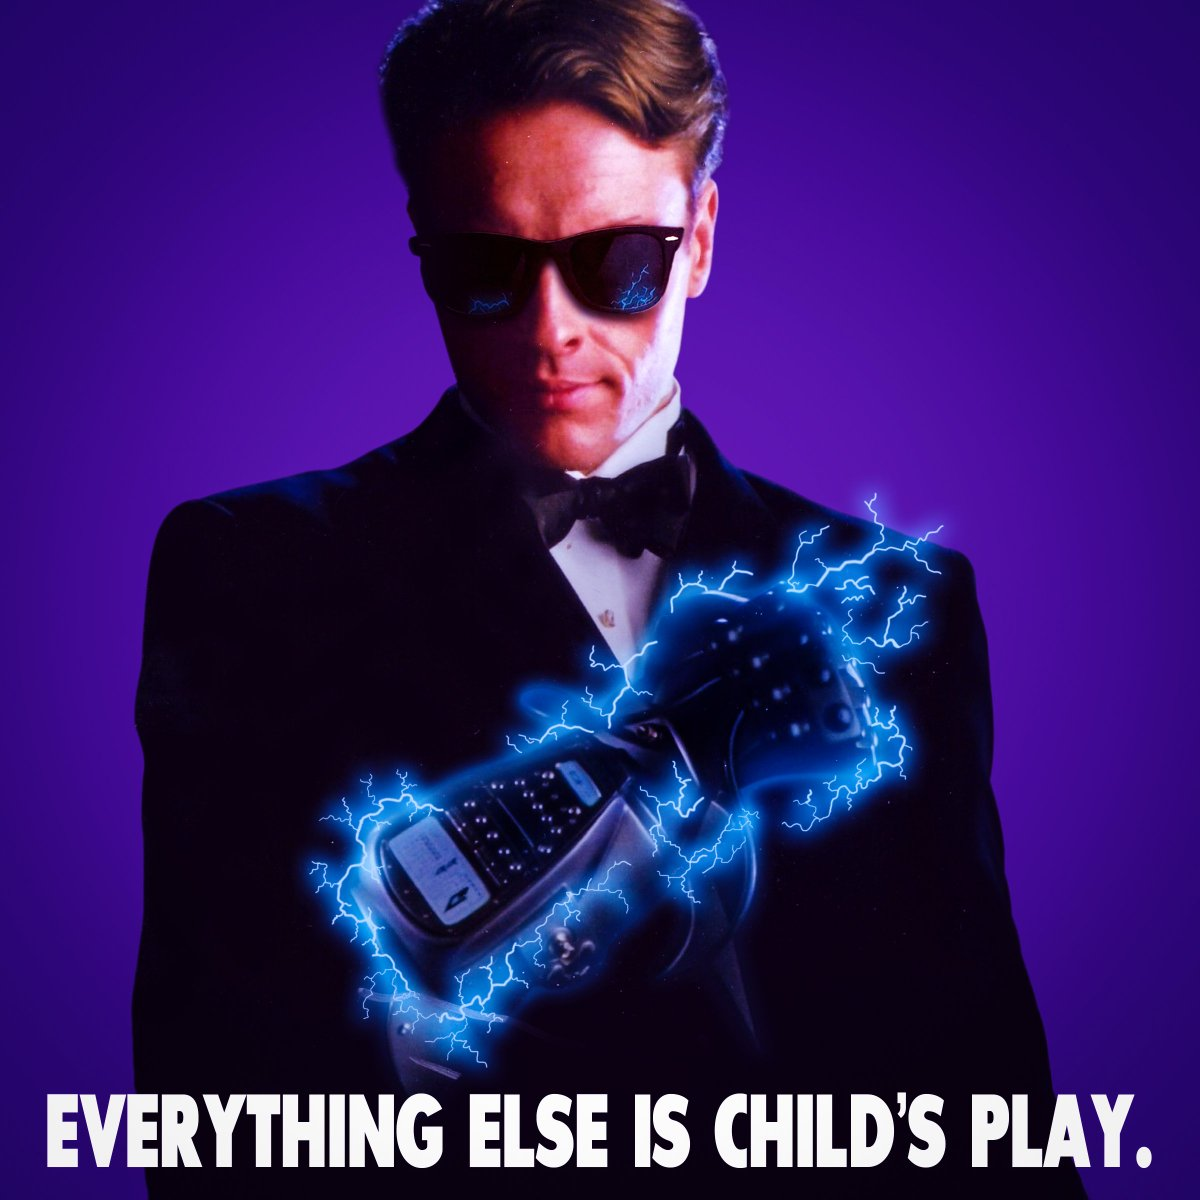 You see Mr. Bond, you can't kill my dreams. But my dreams can kill you. Time to face destiny!#ianfleming #JamesBond #bond25 #Bond #365jamesbondcharacters #Nintendo #dieanotherday #graphicdesigner #PierceBrosnan #movies #design #powerglove #photograph #notimetodie #tobystephens